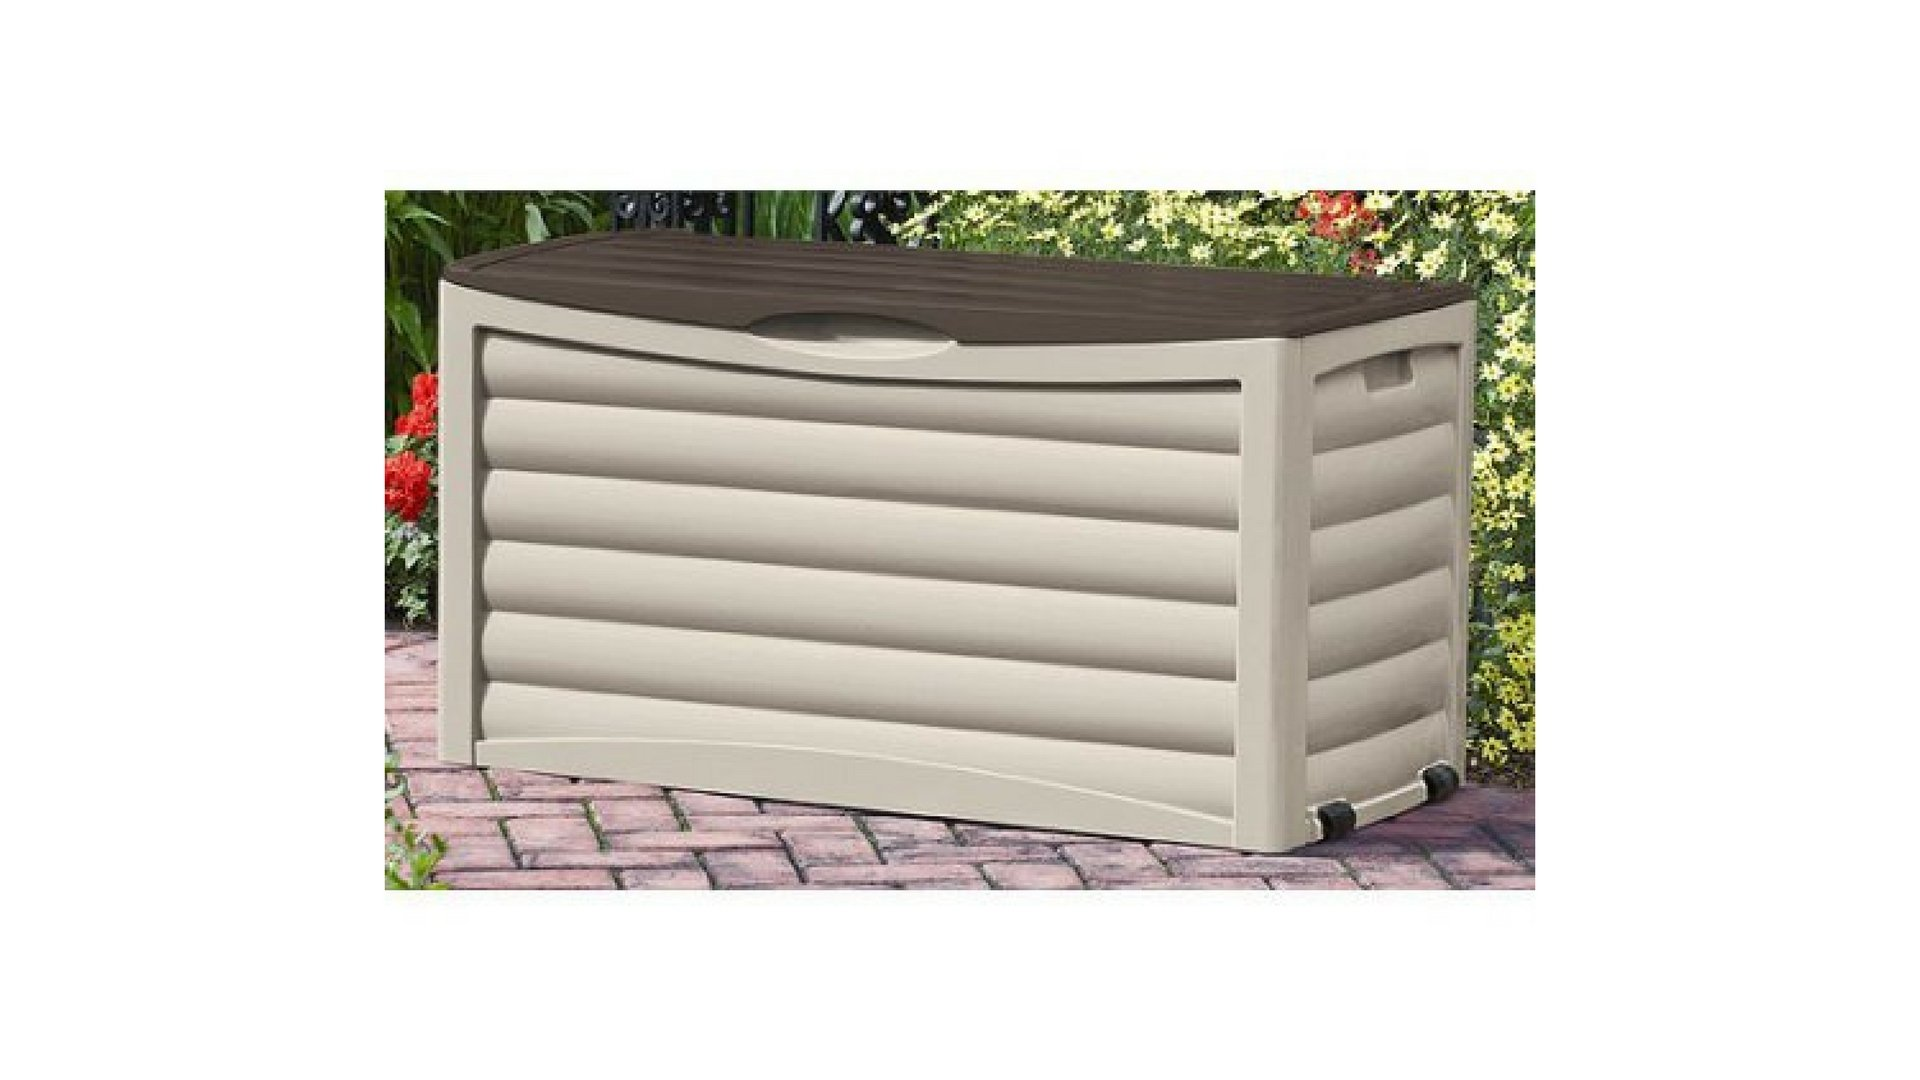 83 Gallon Light Taupe and Mocha Resin Contemporary Wicker Deck Box by Suncast*